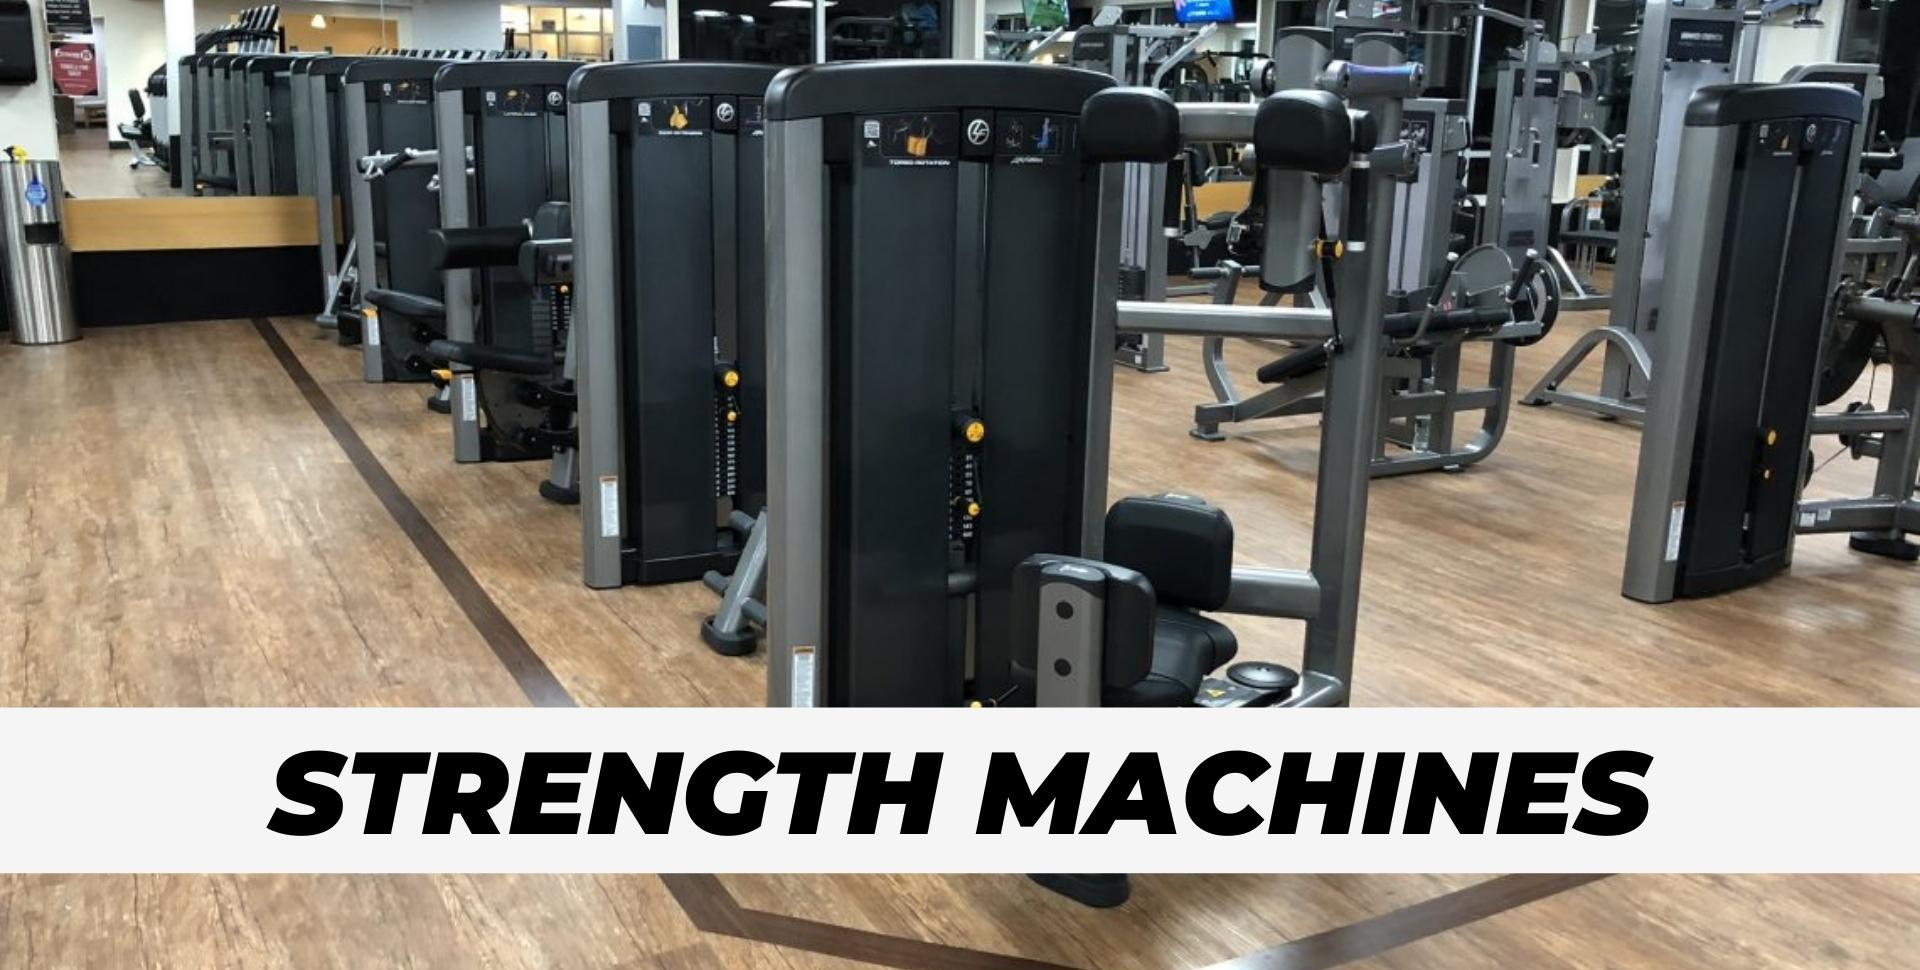 Strength Machines at gym for portfolio pic